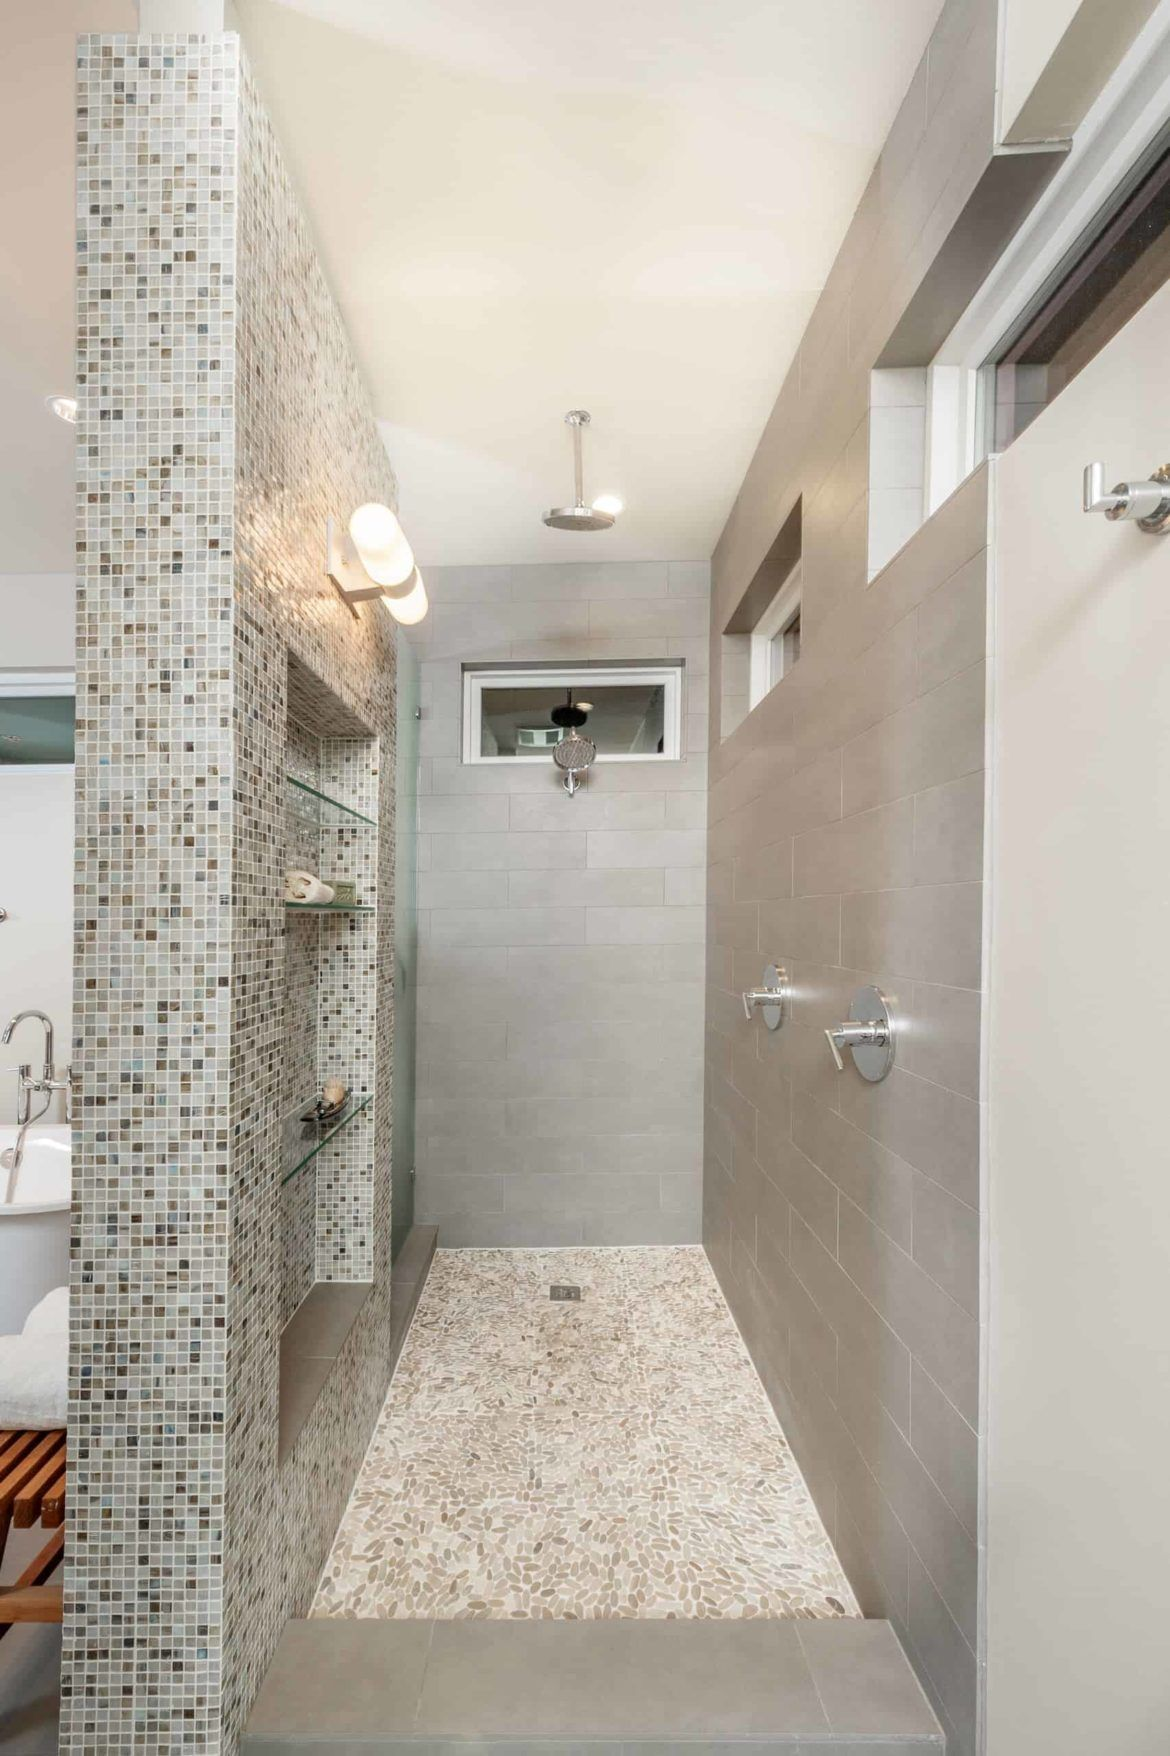 36 Doorless Walk In Shower Ideas And Designs 2020 Edition Bathroom Layout Showers Without Doors Walk In Shower Designs